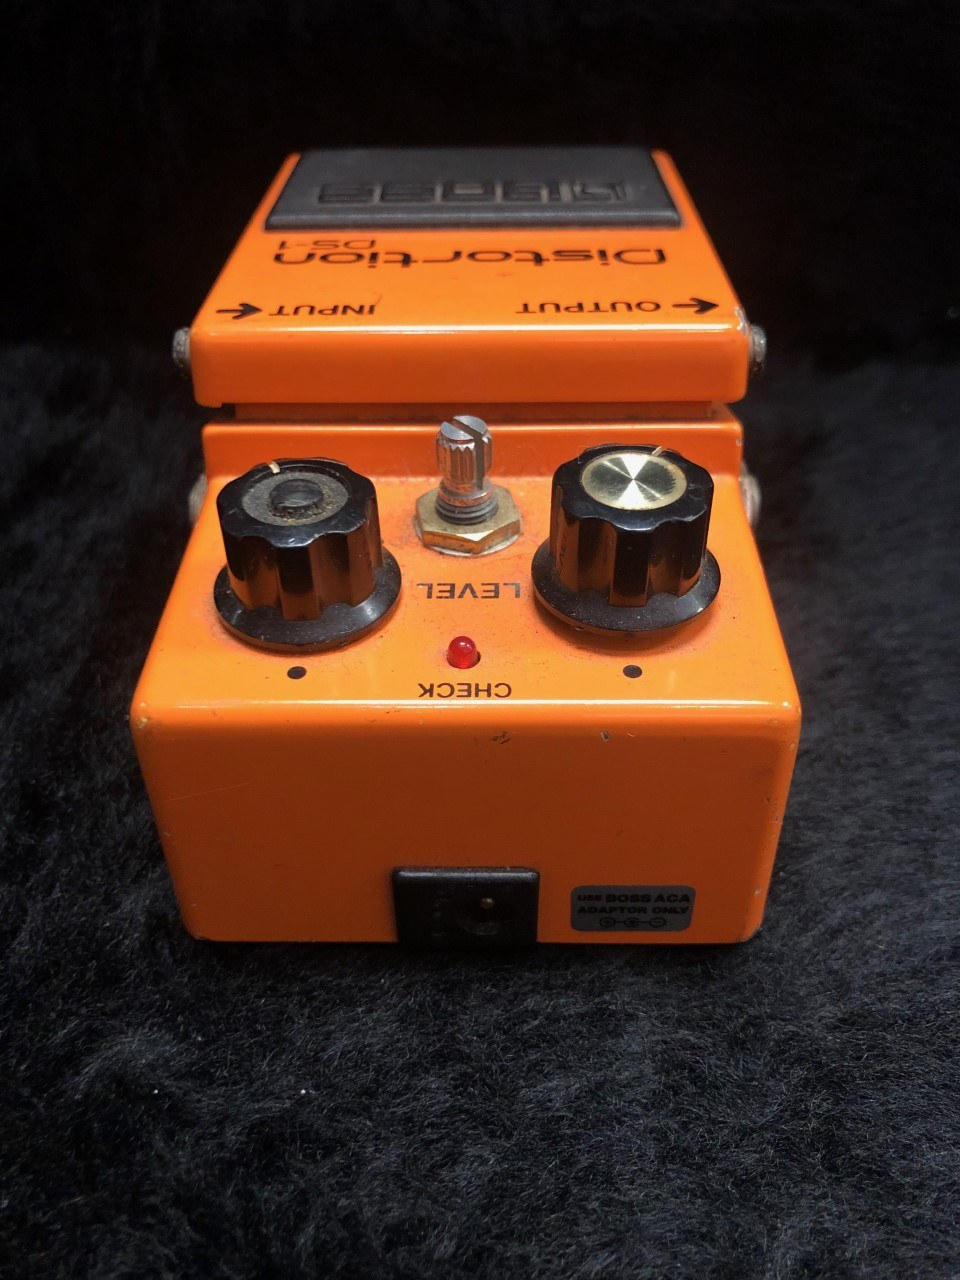 used boss boss ds 1 distortion pedal made in japan 1986 sam ash used gear. Black Bedroom Furniture Sets. Home Design Ideas